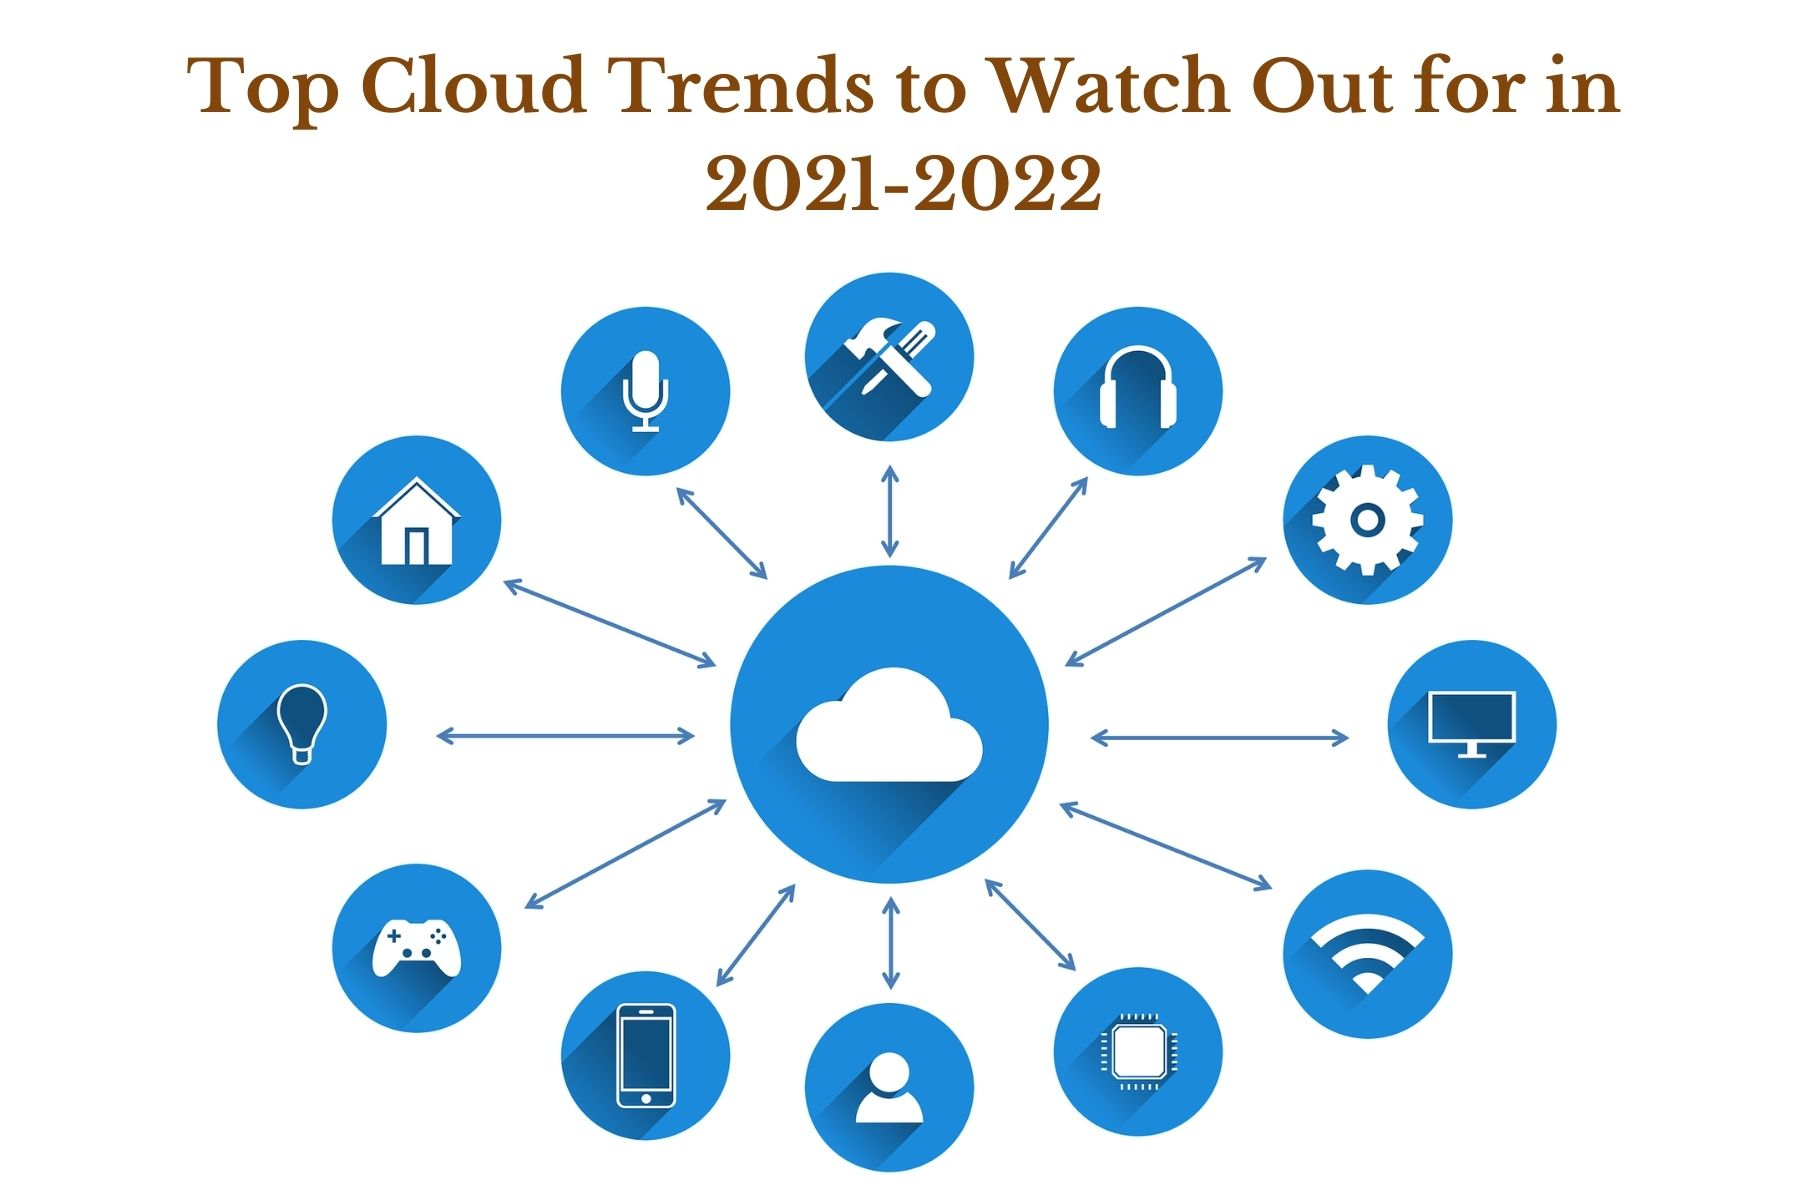 Top Cloud Trends to Watch Out for in 2021-2022